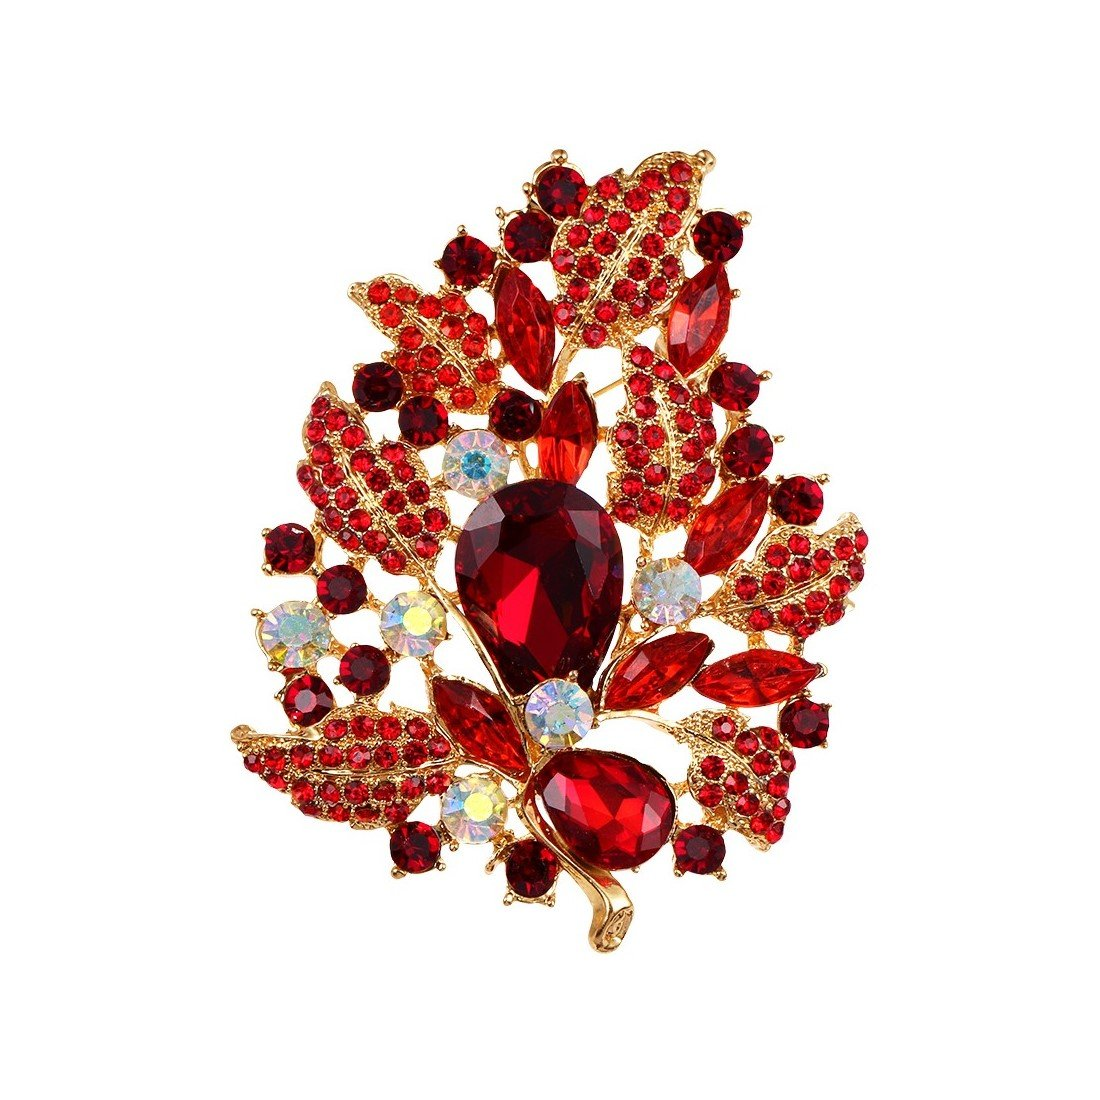 WeimanJewelry Gold Plated Large Rhinestone Glass Crystal Wedding Flower Leaf Bouquet Brooch Pin for Women (Red)